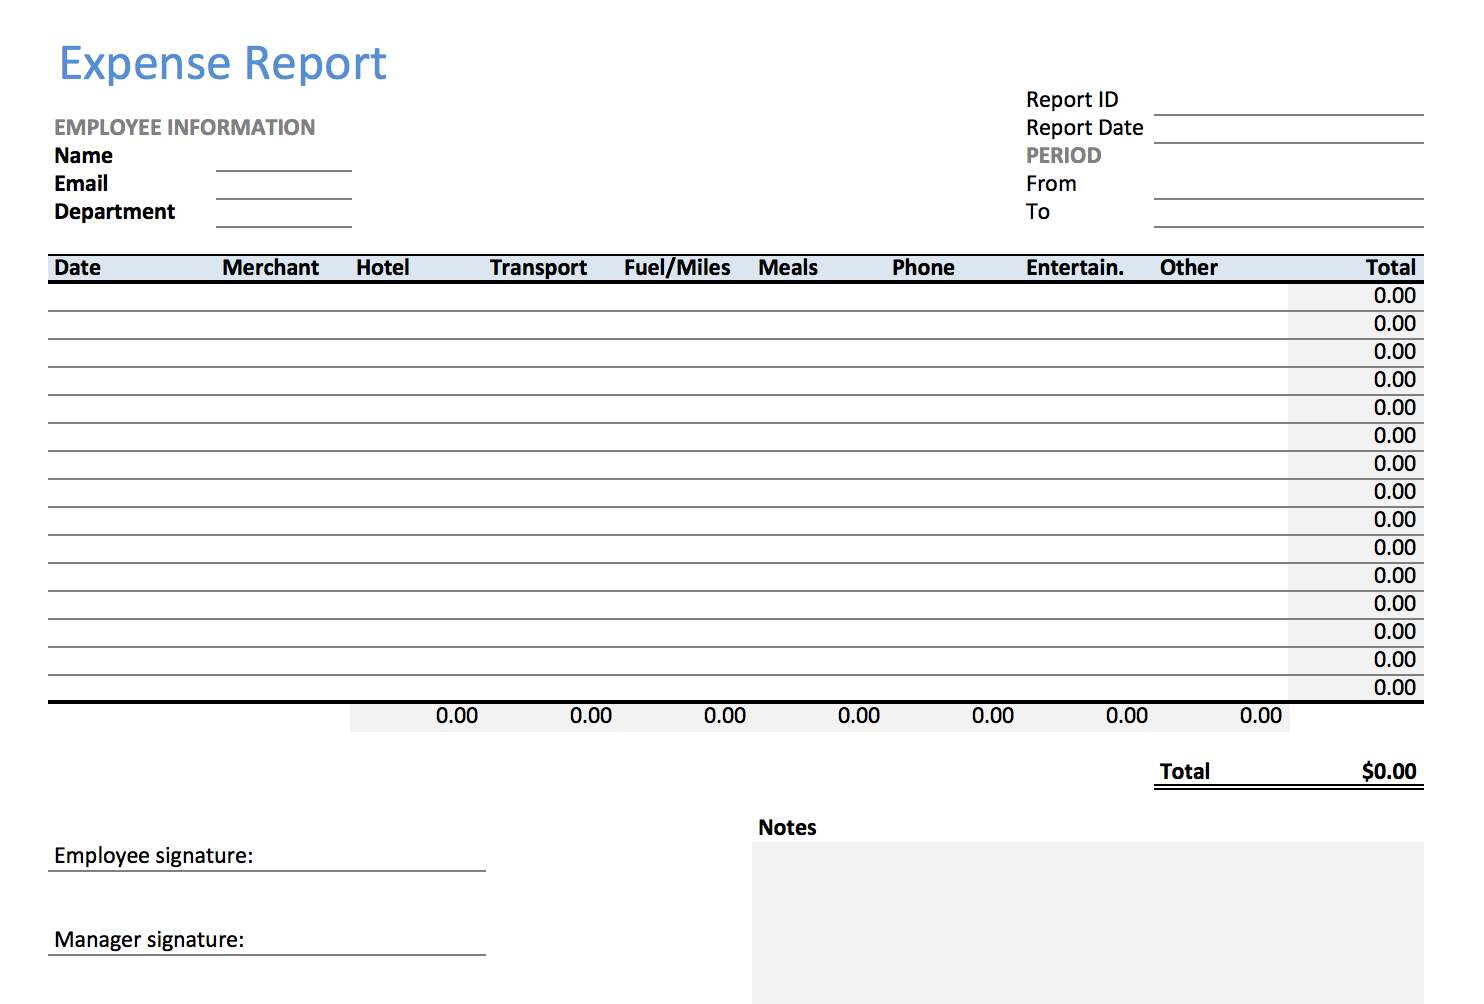 Excel Expense Report Template   Keepek In Business Expenses Report Template Excel